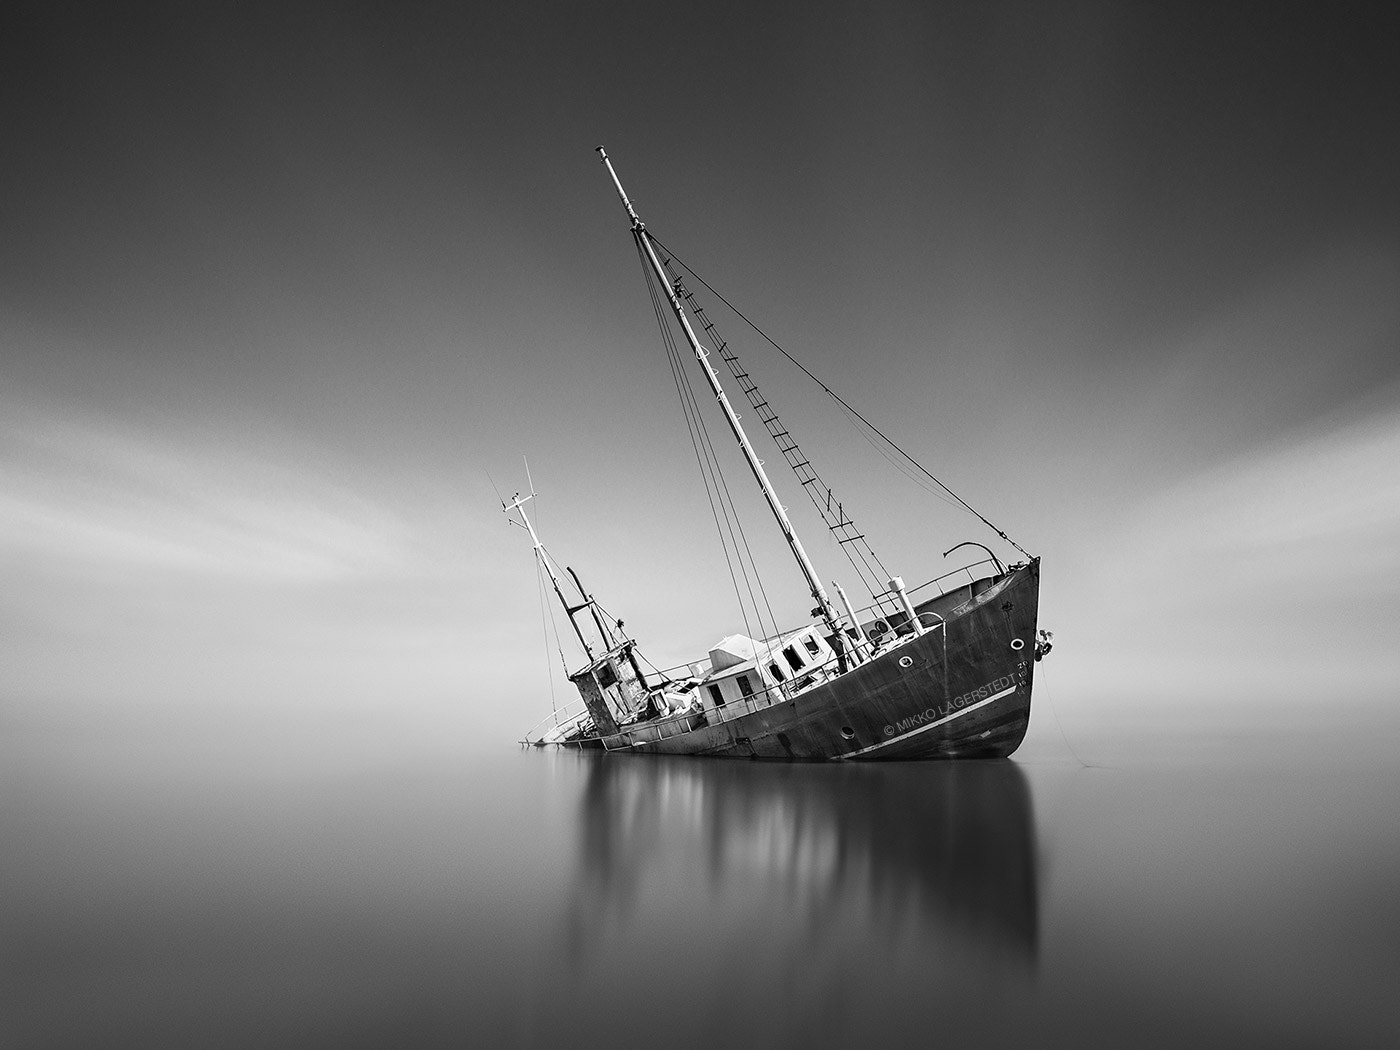 Photograph Shipwreck by Mikko Lagerstedt on 500px